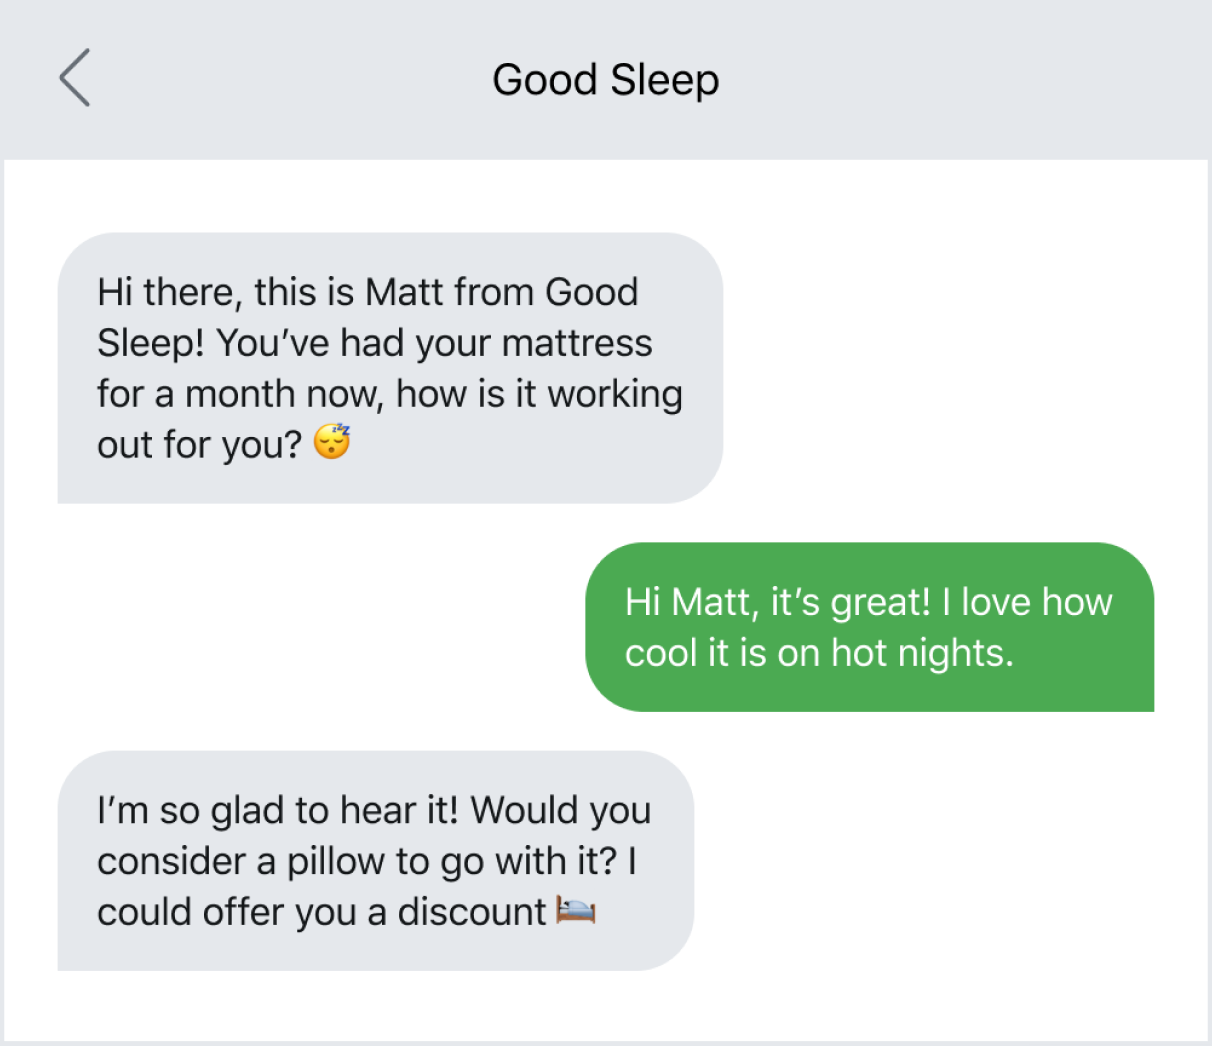 Using text announcements to check-in with customers and upsell